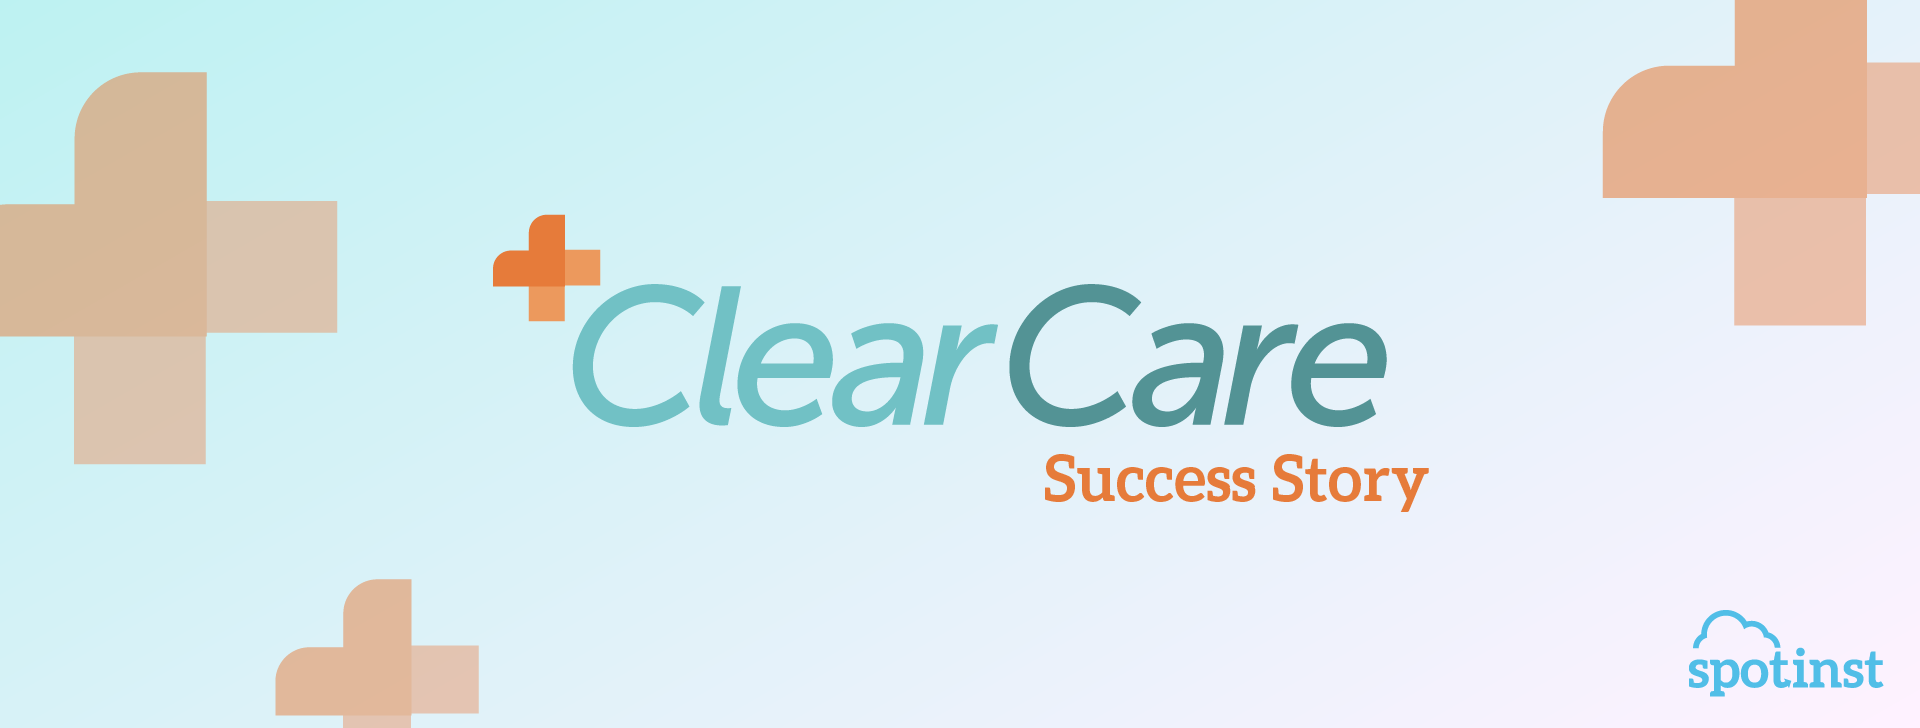 ClearCare: ECS Autoscaling on Spot saves $40K monthly